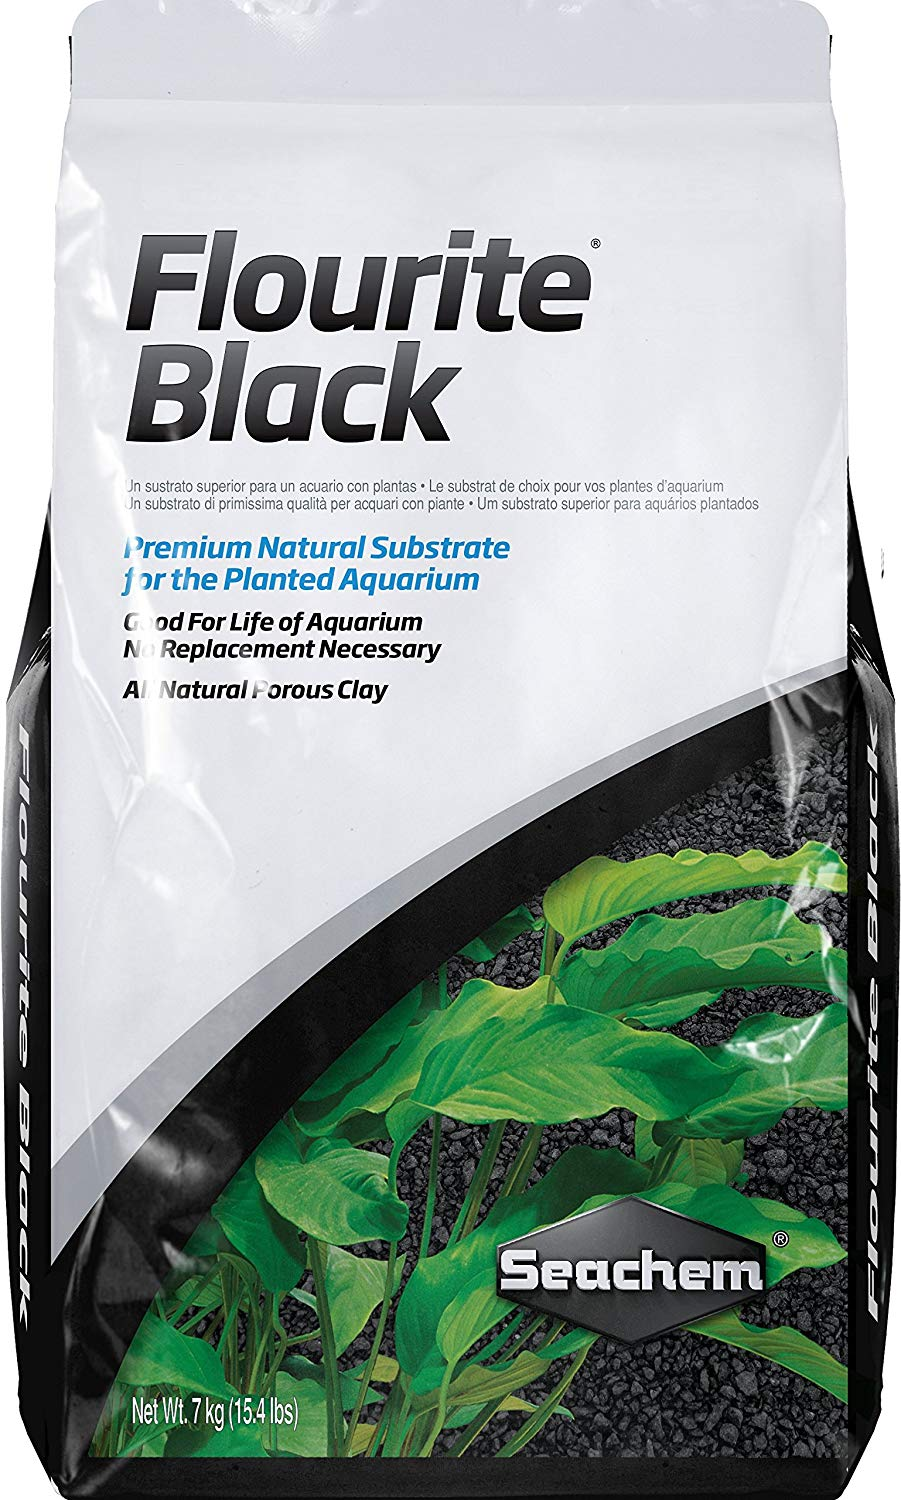 Seachem Flourite Black Planted Aquarium Substrate Review by www.puppyurl.com